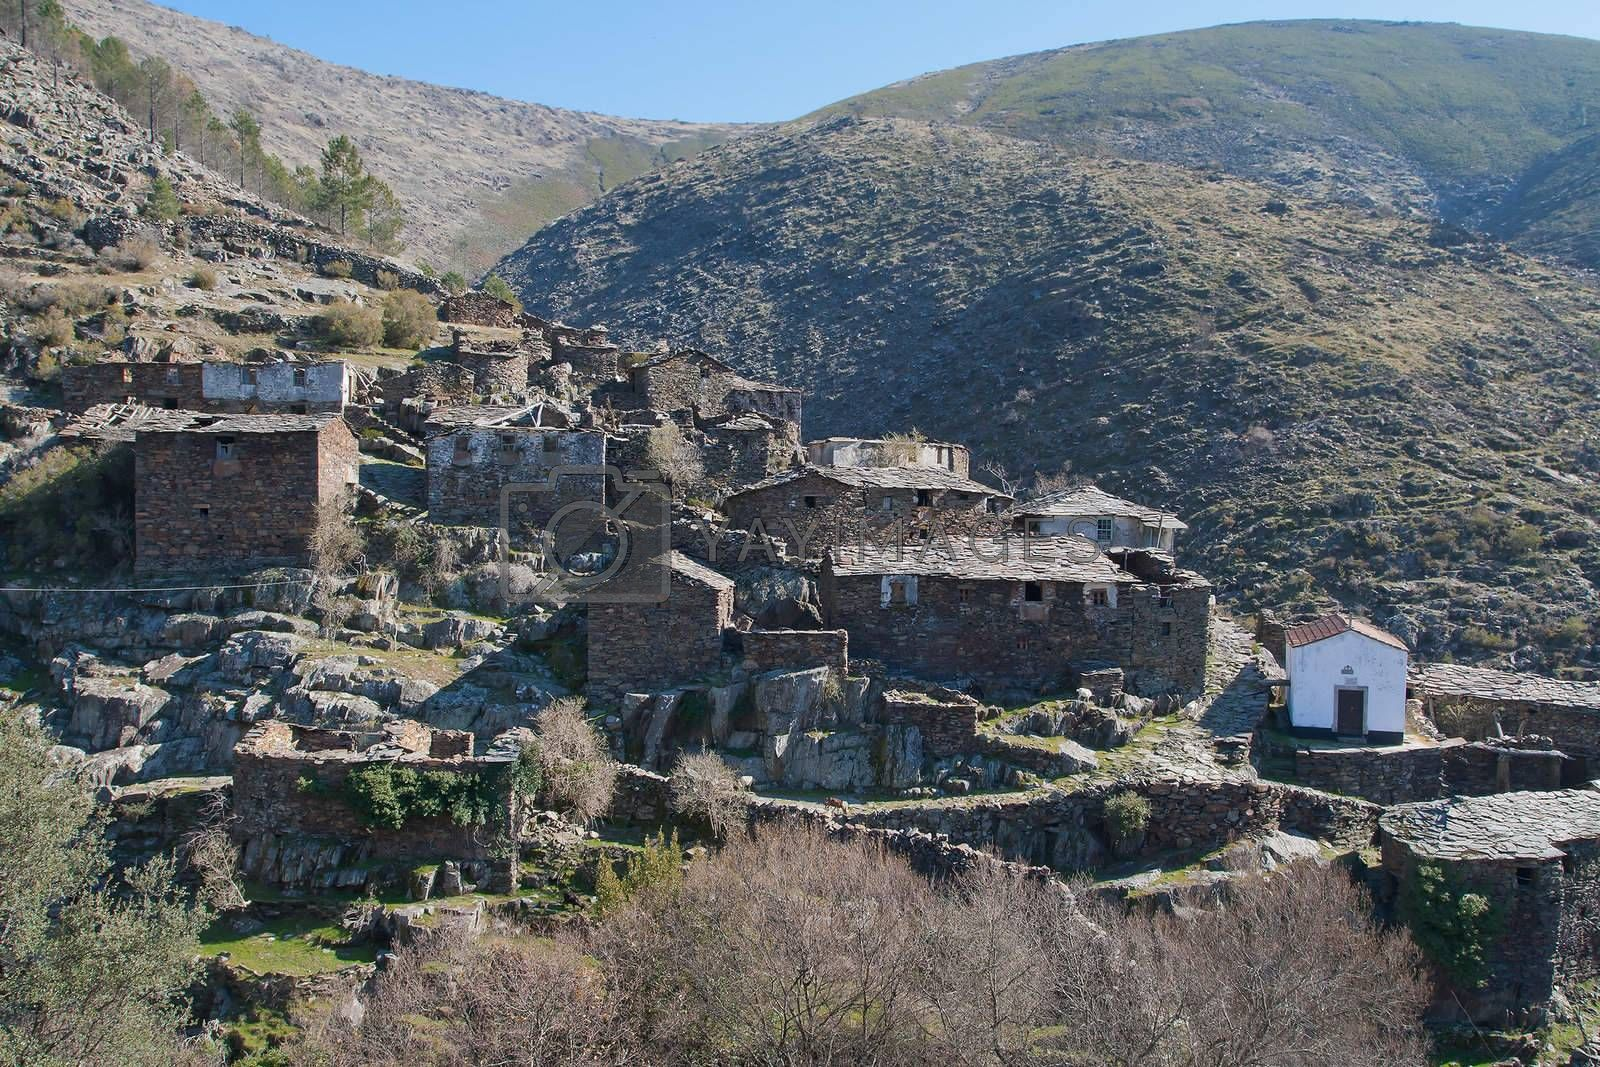 Village of Drave in the middle of the mountains in Portugal